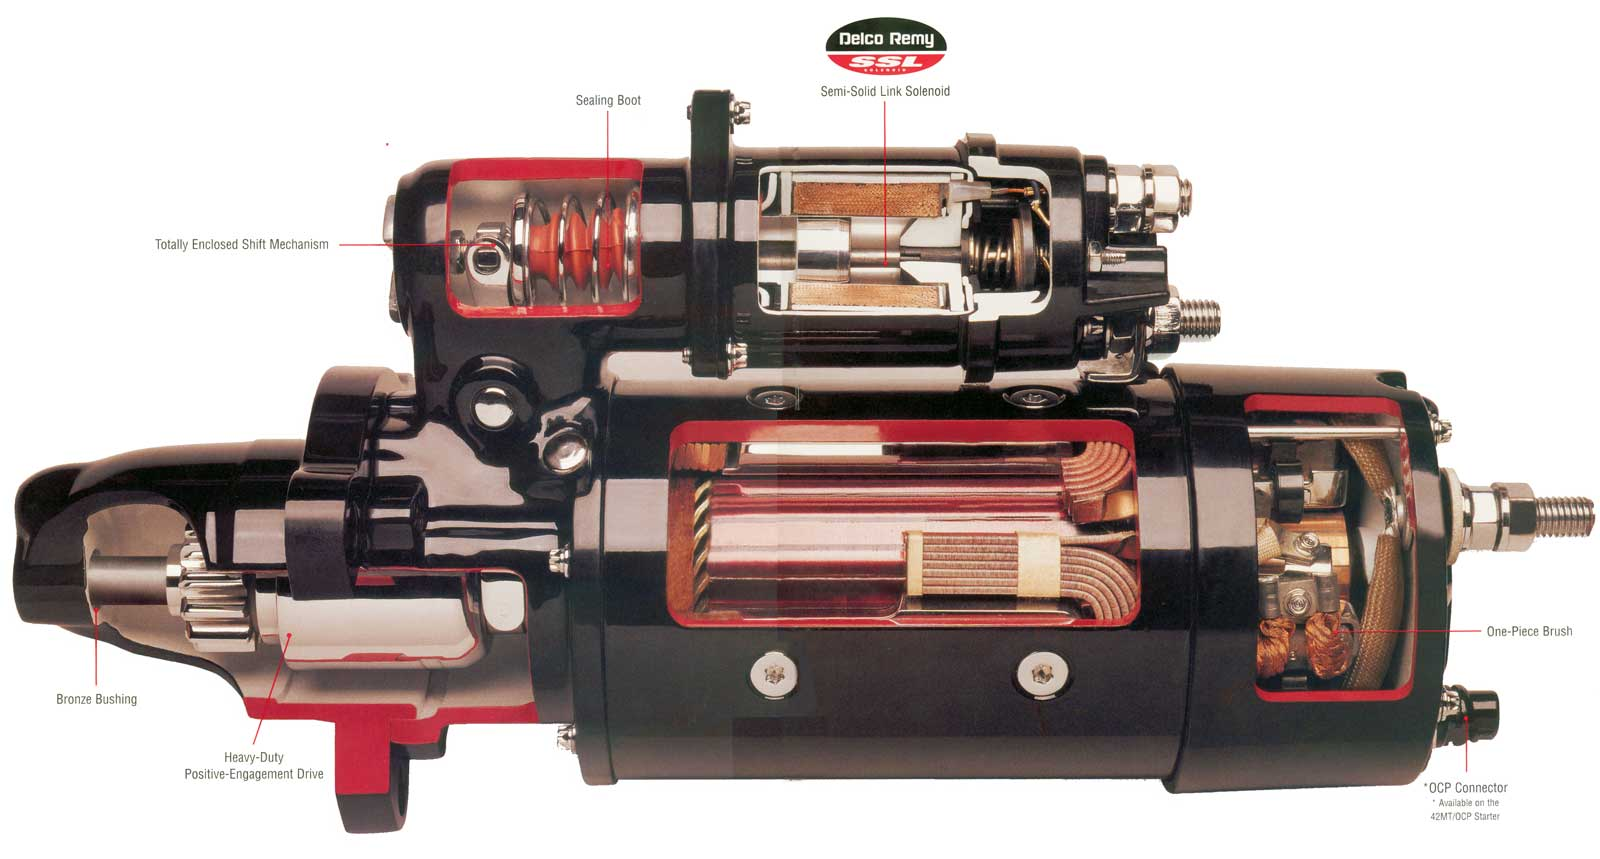 hight resolution of 42mt starter motor specifications delco remydelco starter schematic 20